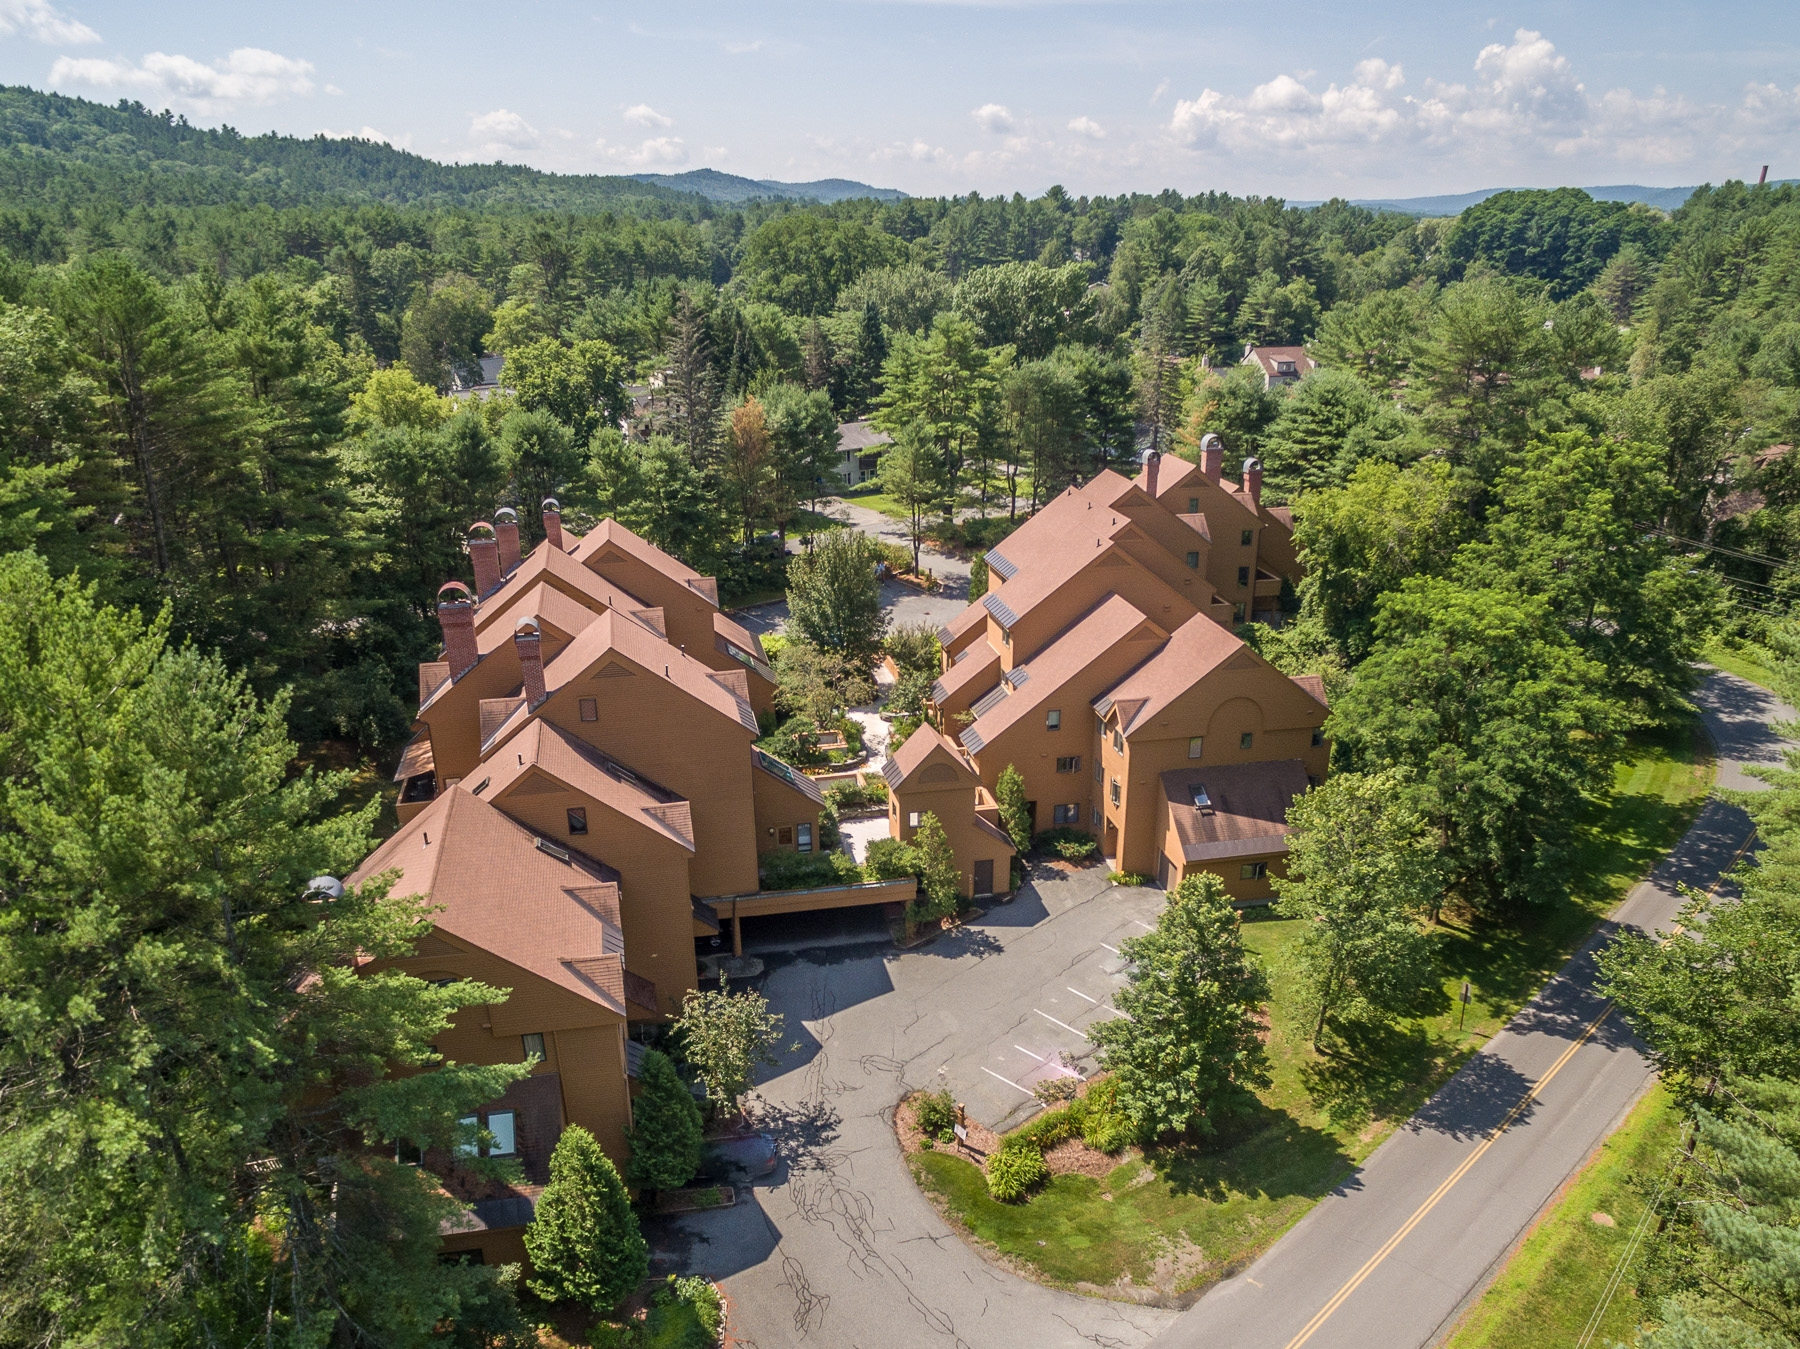 Condominium for Sale at 22 The Courtyard, Hanover Hanover, New Hampshire 03755 United States